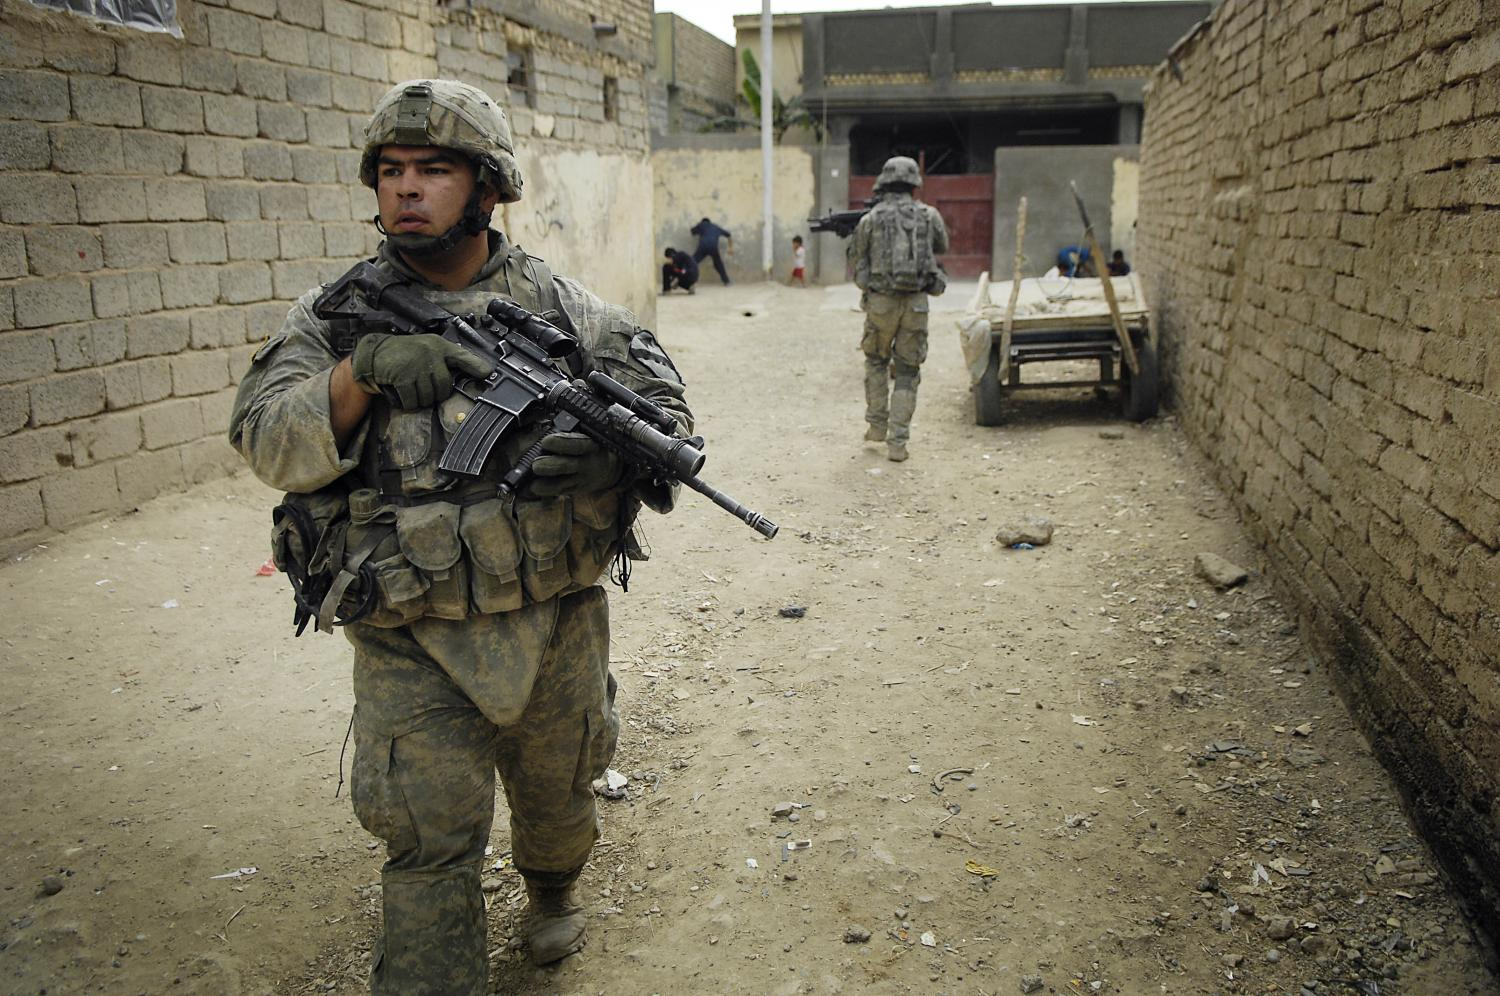 ptsd causes effects in soldiers Causes post-traumatic stress disorder (ptsd) can develop after a very stressful, frightening or distressing event, or after a prolonged traumatic experience personal assaults, such as sexual assault, mugging or robbery prolonged sexual abuse, violence or severe neglect witnessing violent deaths military combat being.